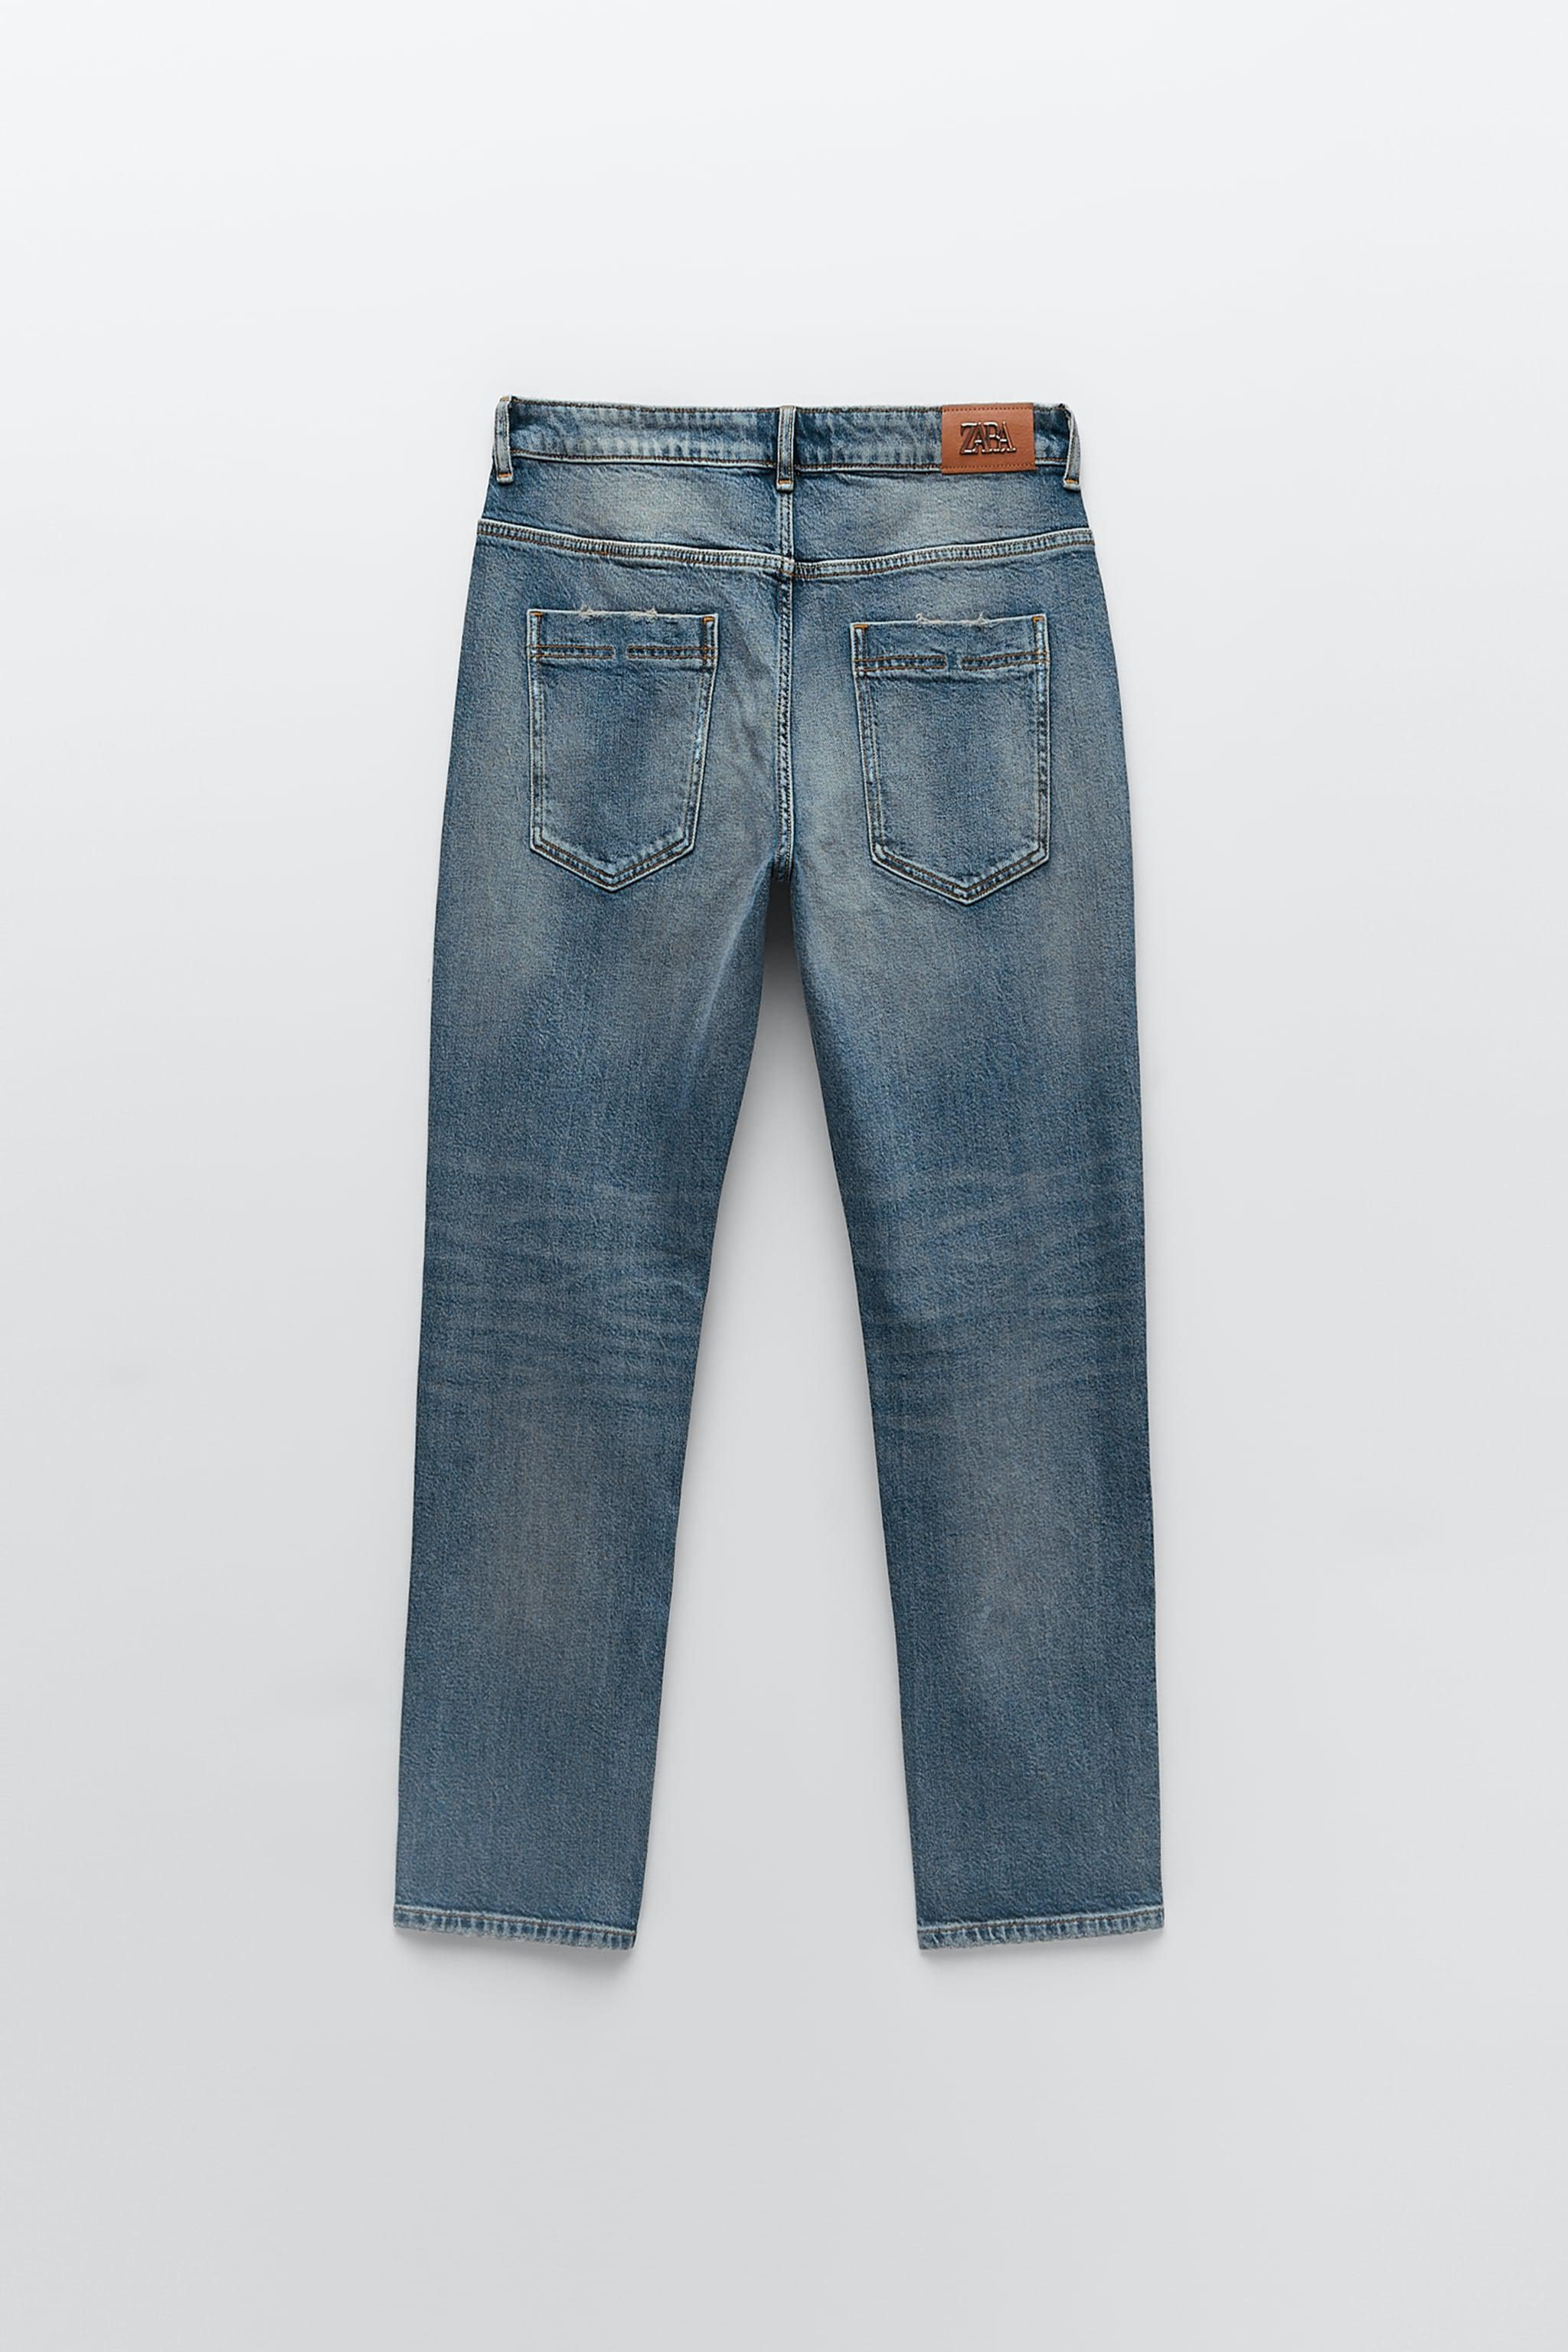 Z1975 RELAXED FIT JEANS 4